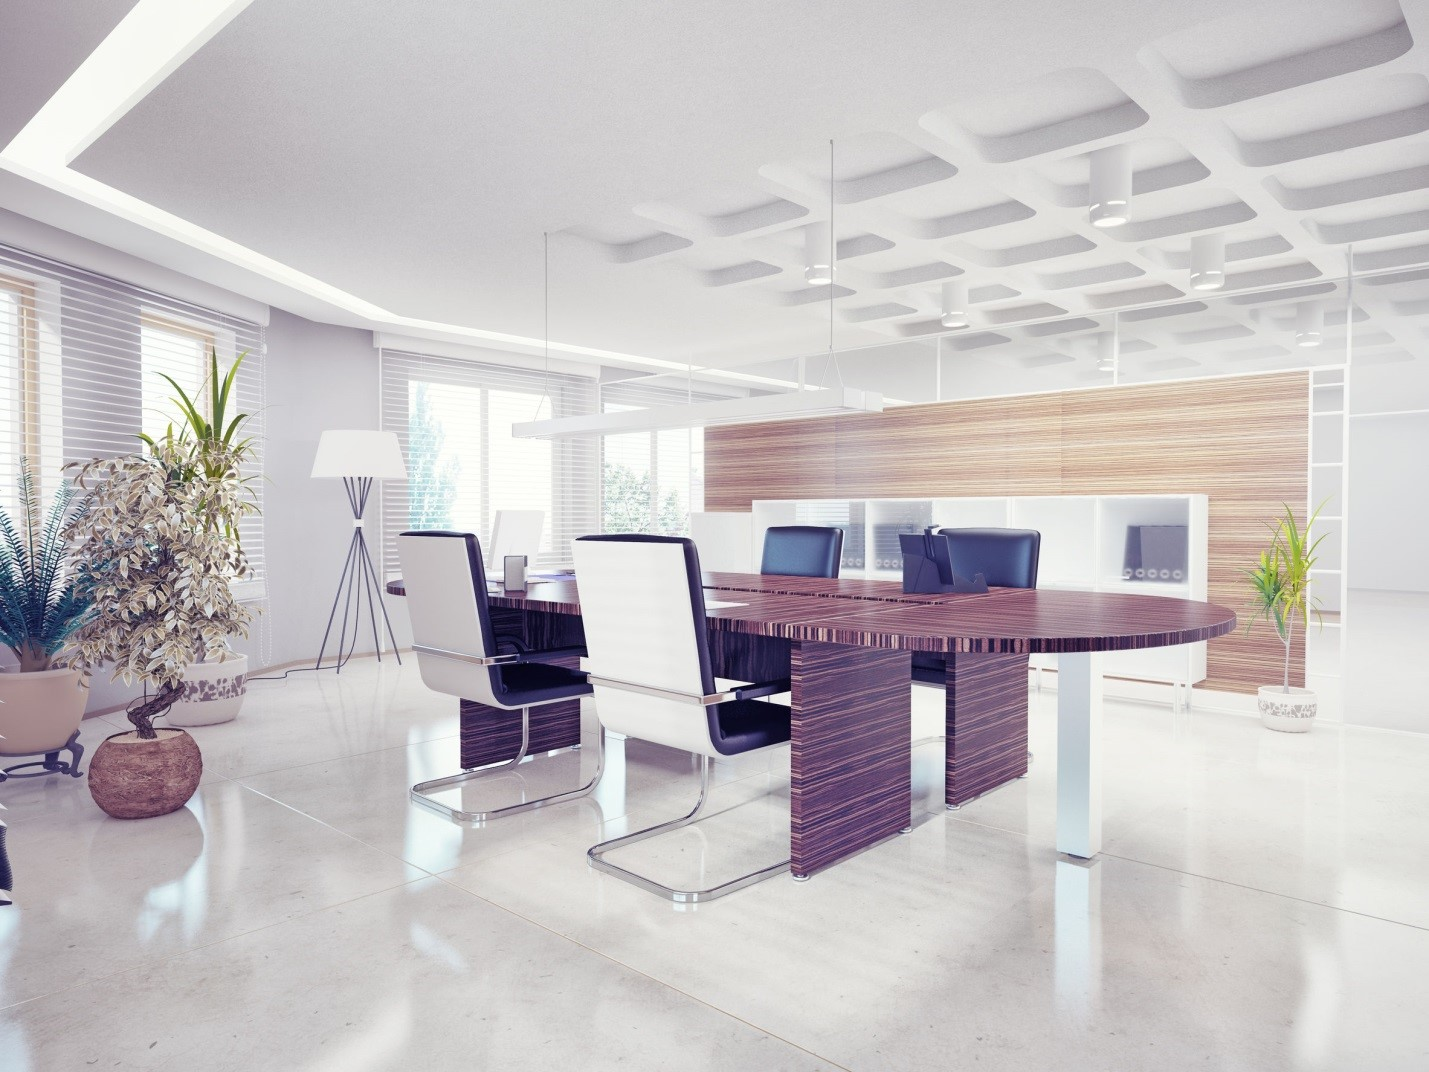 Office Furniture Kitchener Waterloo Startup Design Guide How To Choose And Furnish Your First Office